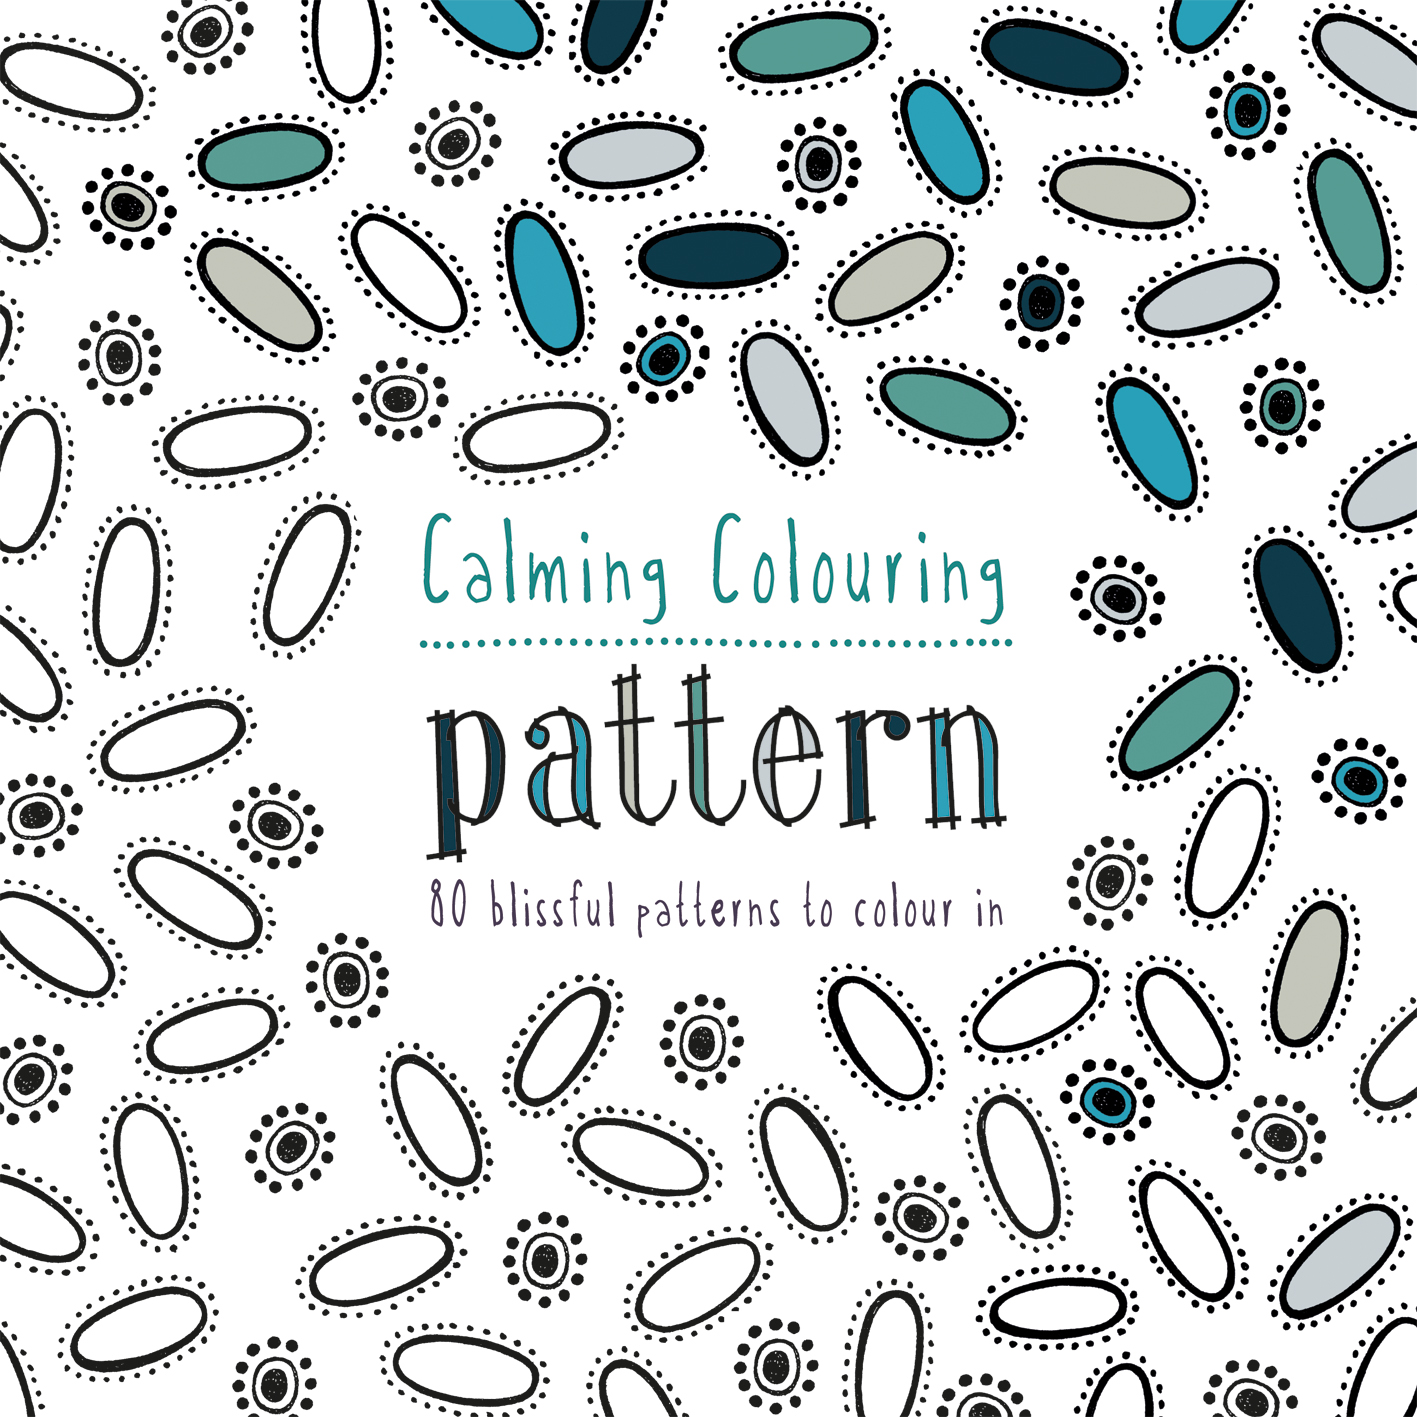 Calming Colouring Patterns